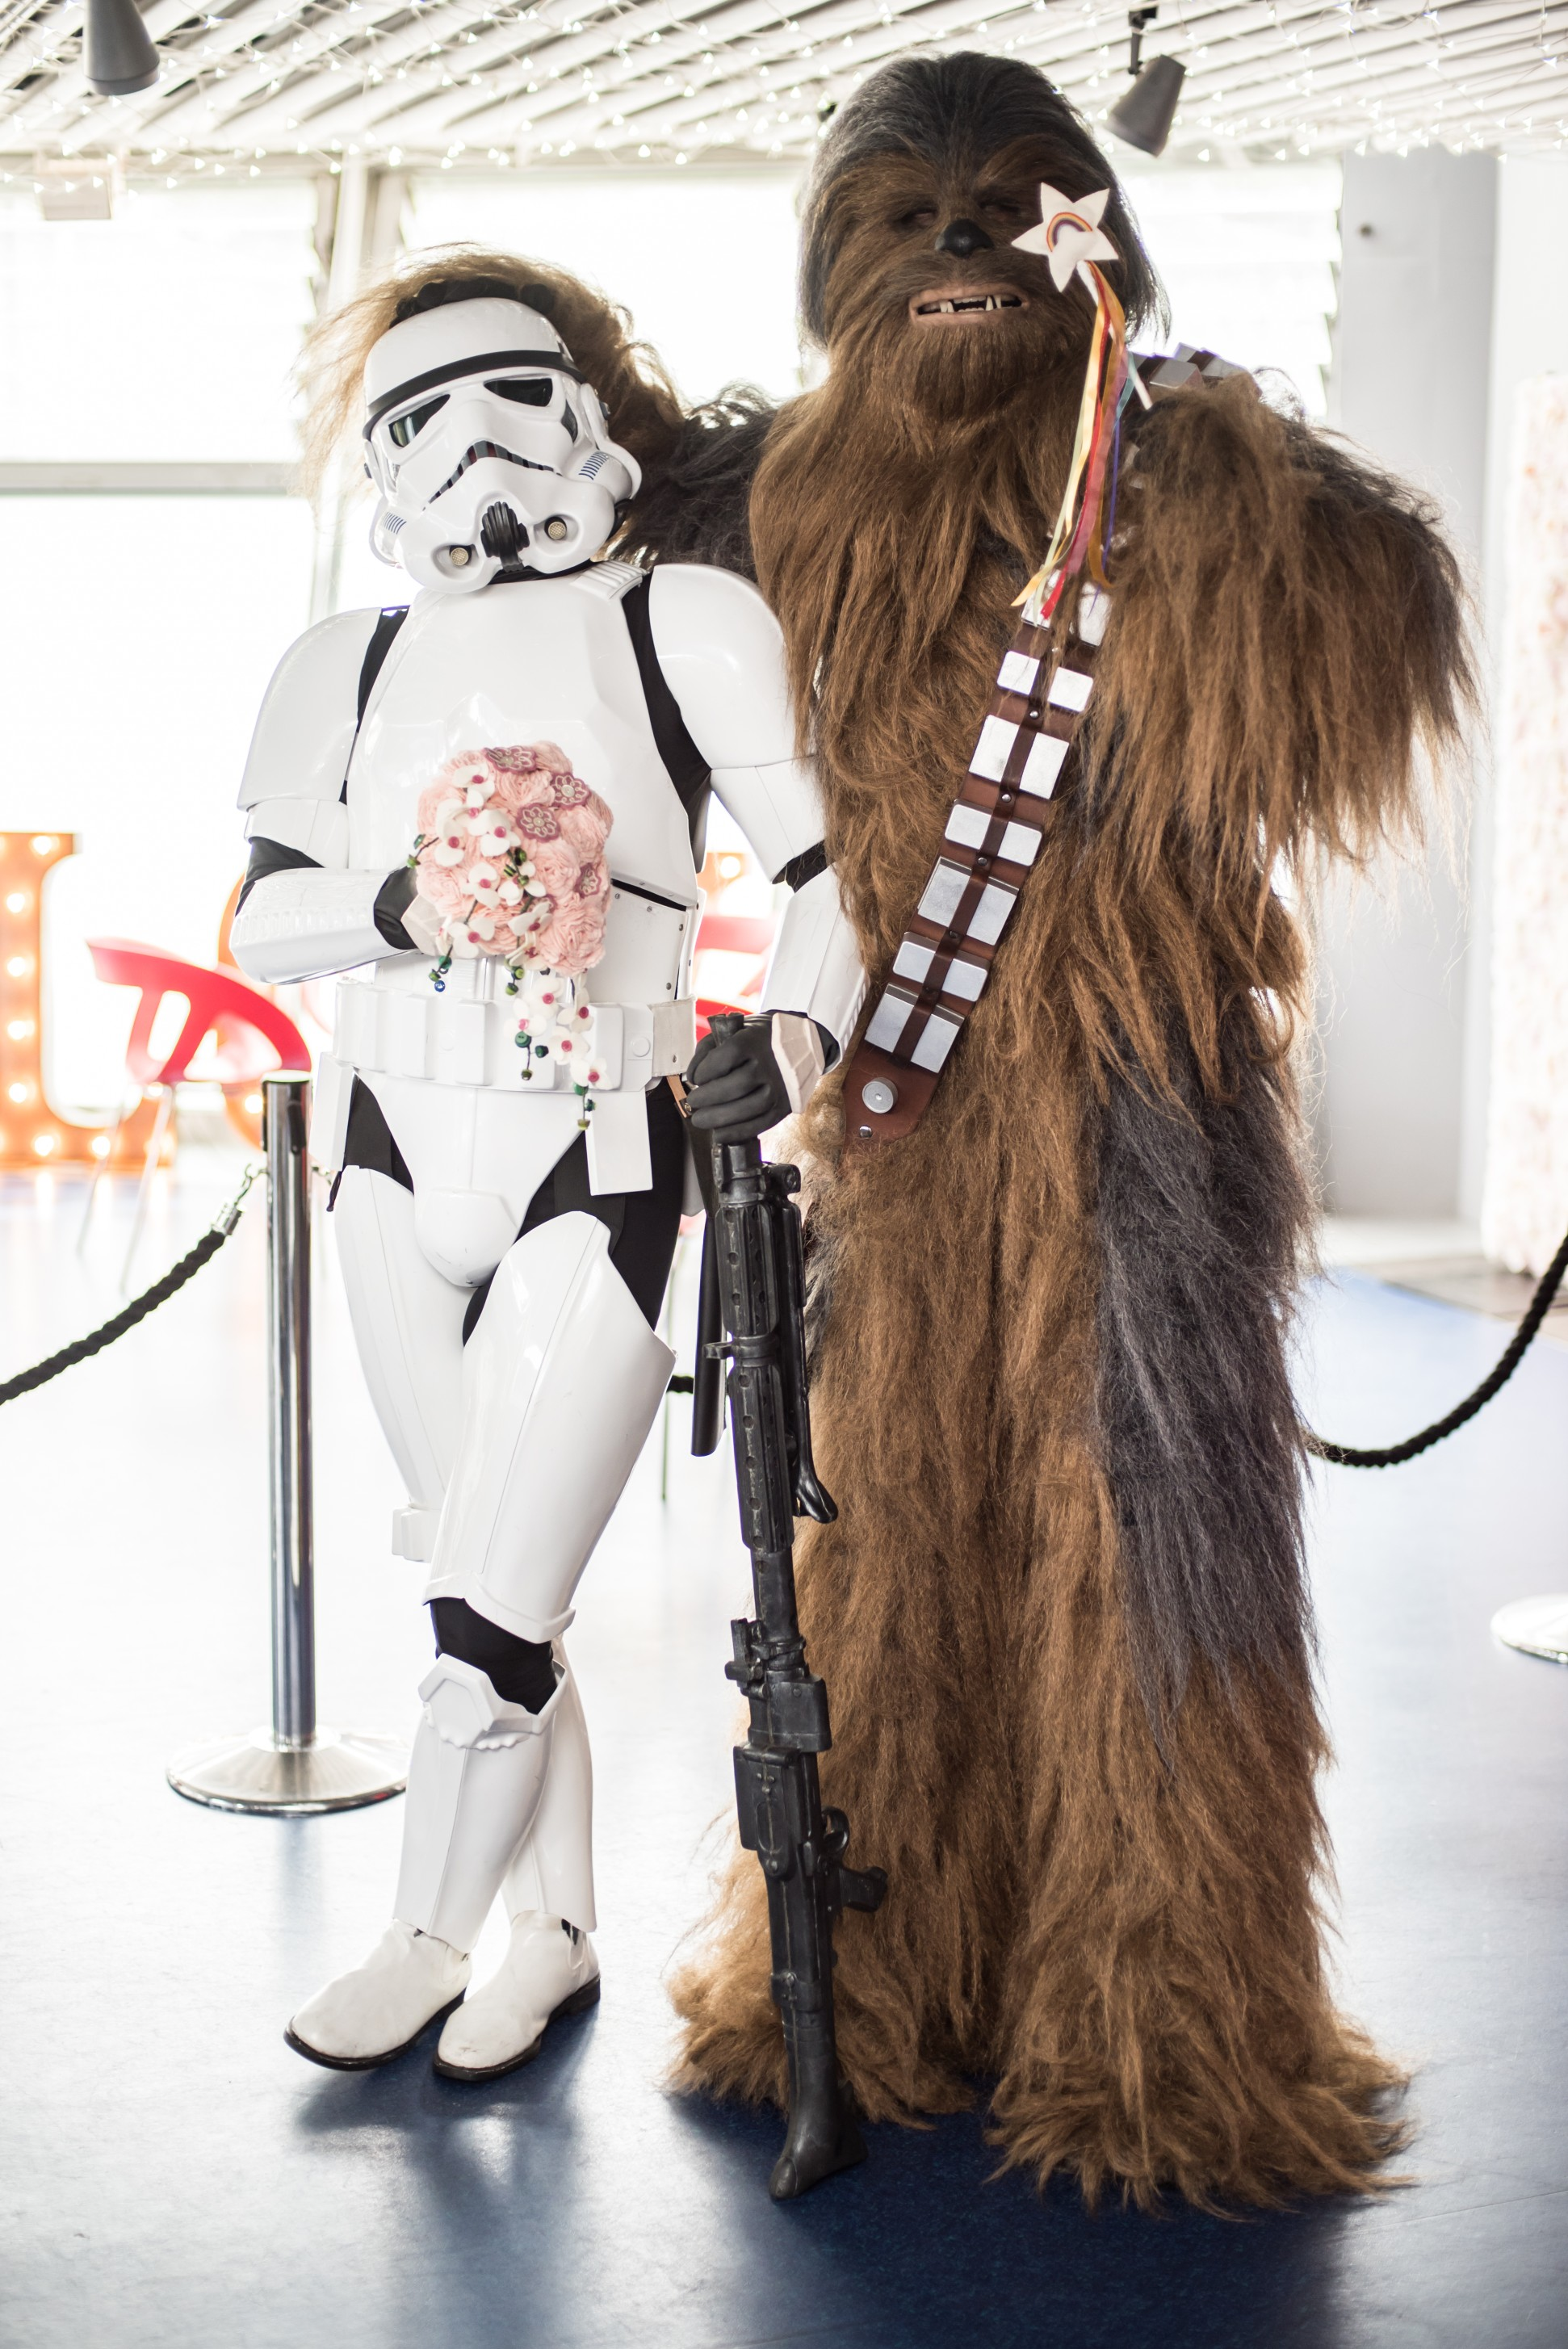 Star Wars wedding photo featuring Imperial army storm trooper holding bouquet and chewbacca holding fairy wand - by charlotte laurie designs with Imperial Icons - themed wedding ideas 2